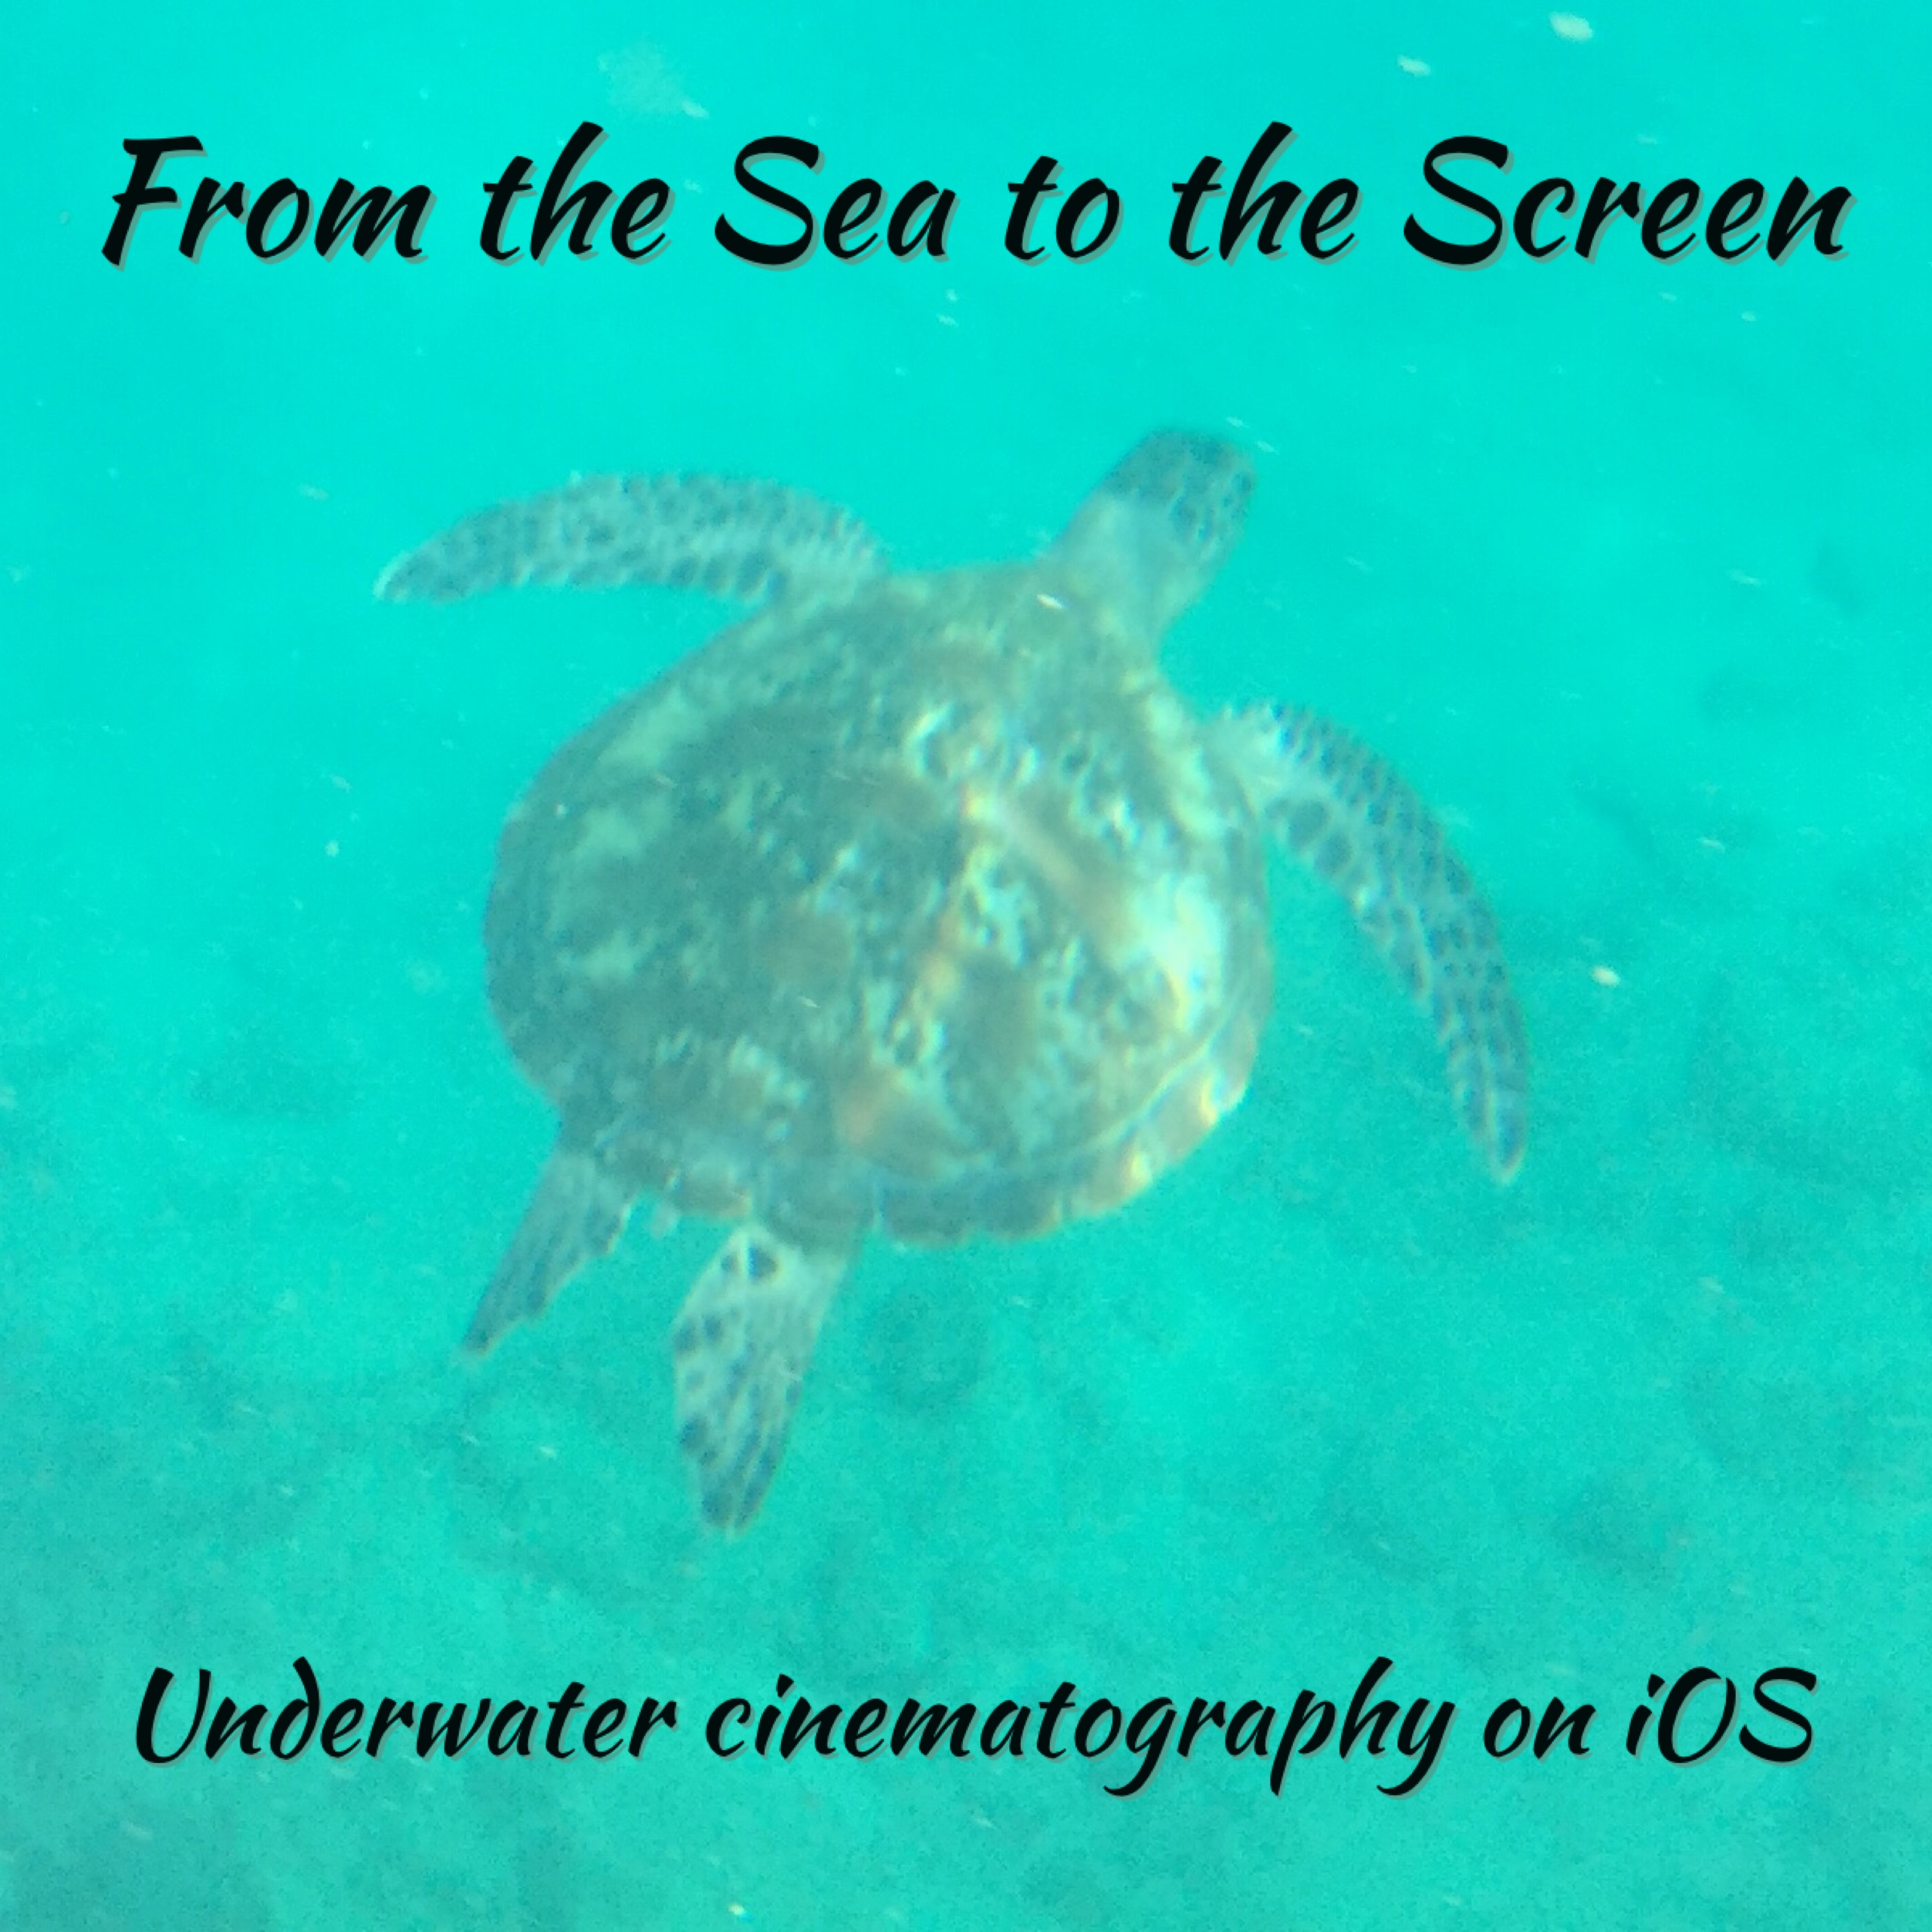 FEATURE: From the Sea to the Screen | Ipad Educators